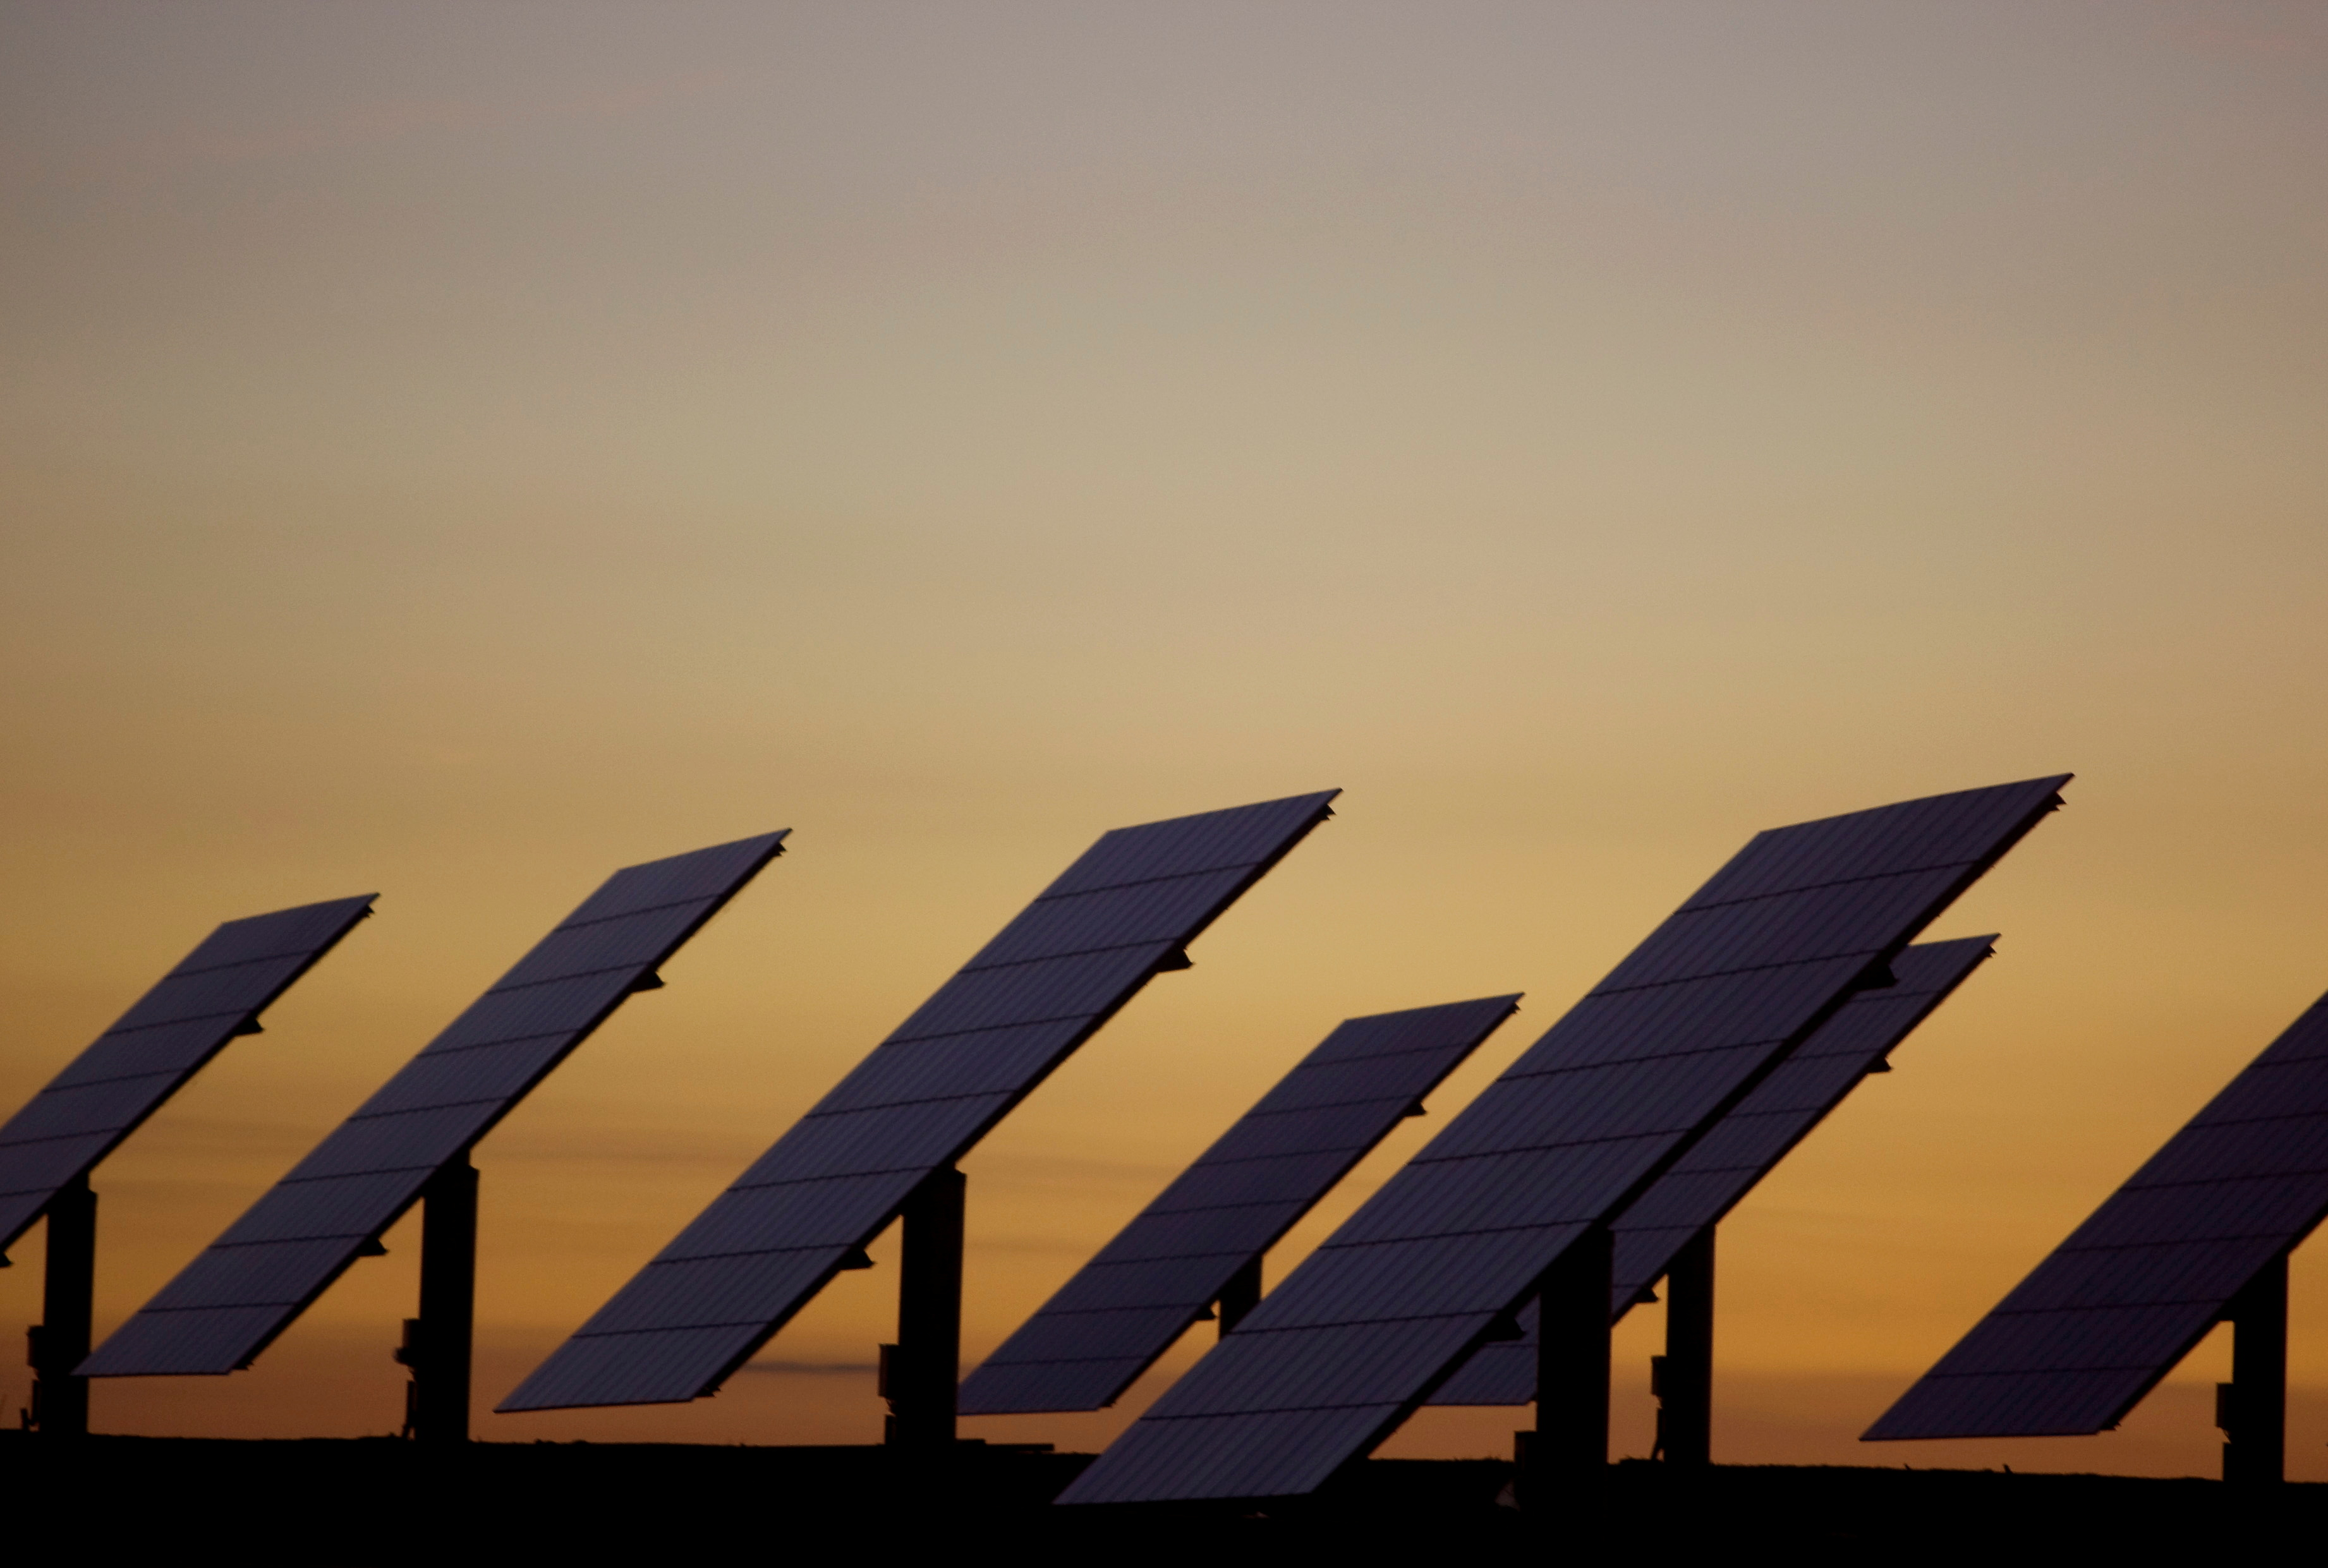 The sun sets beyond solar panels at a power plant in Amareleja, southern Portugal, April 23, 2008. REUTERS/Jose Manuel Ribeiro/File Photo